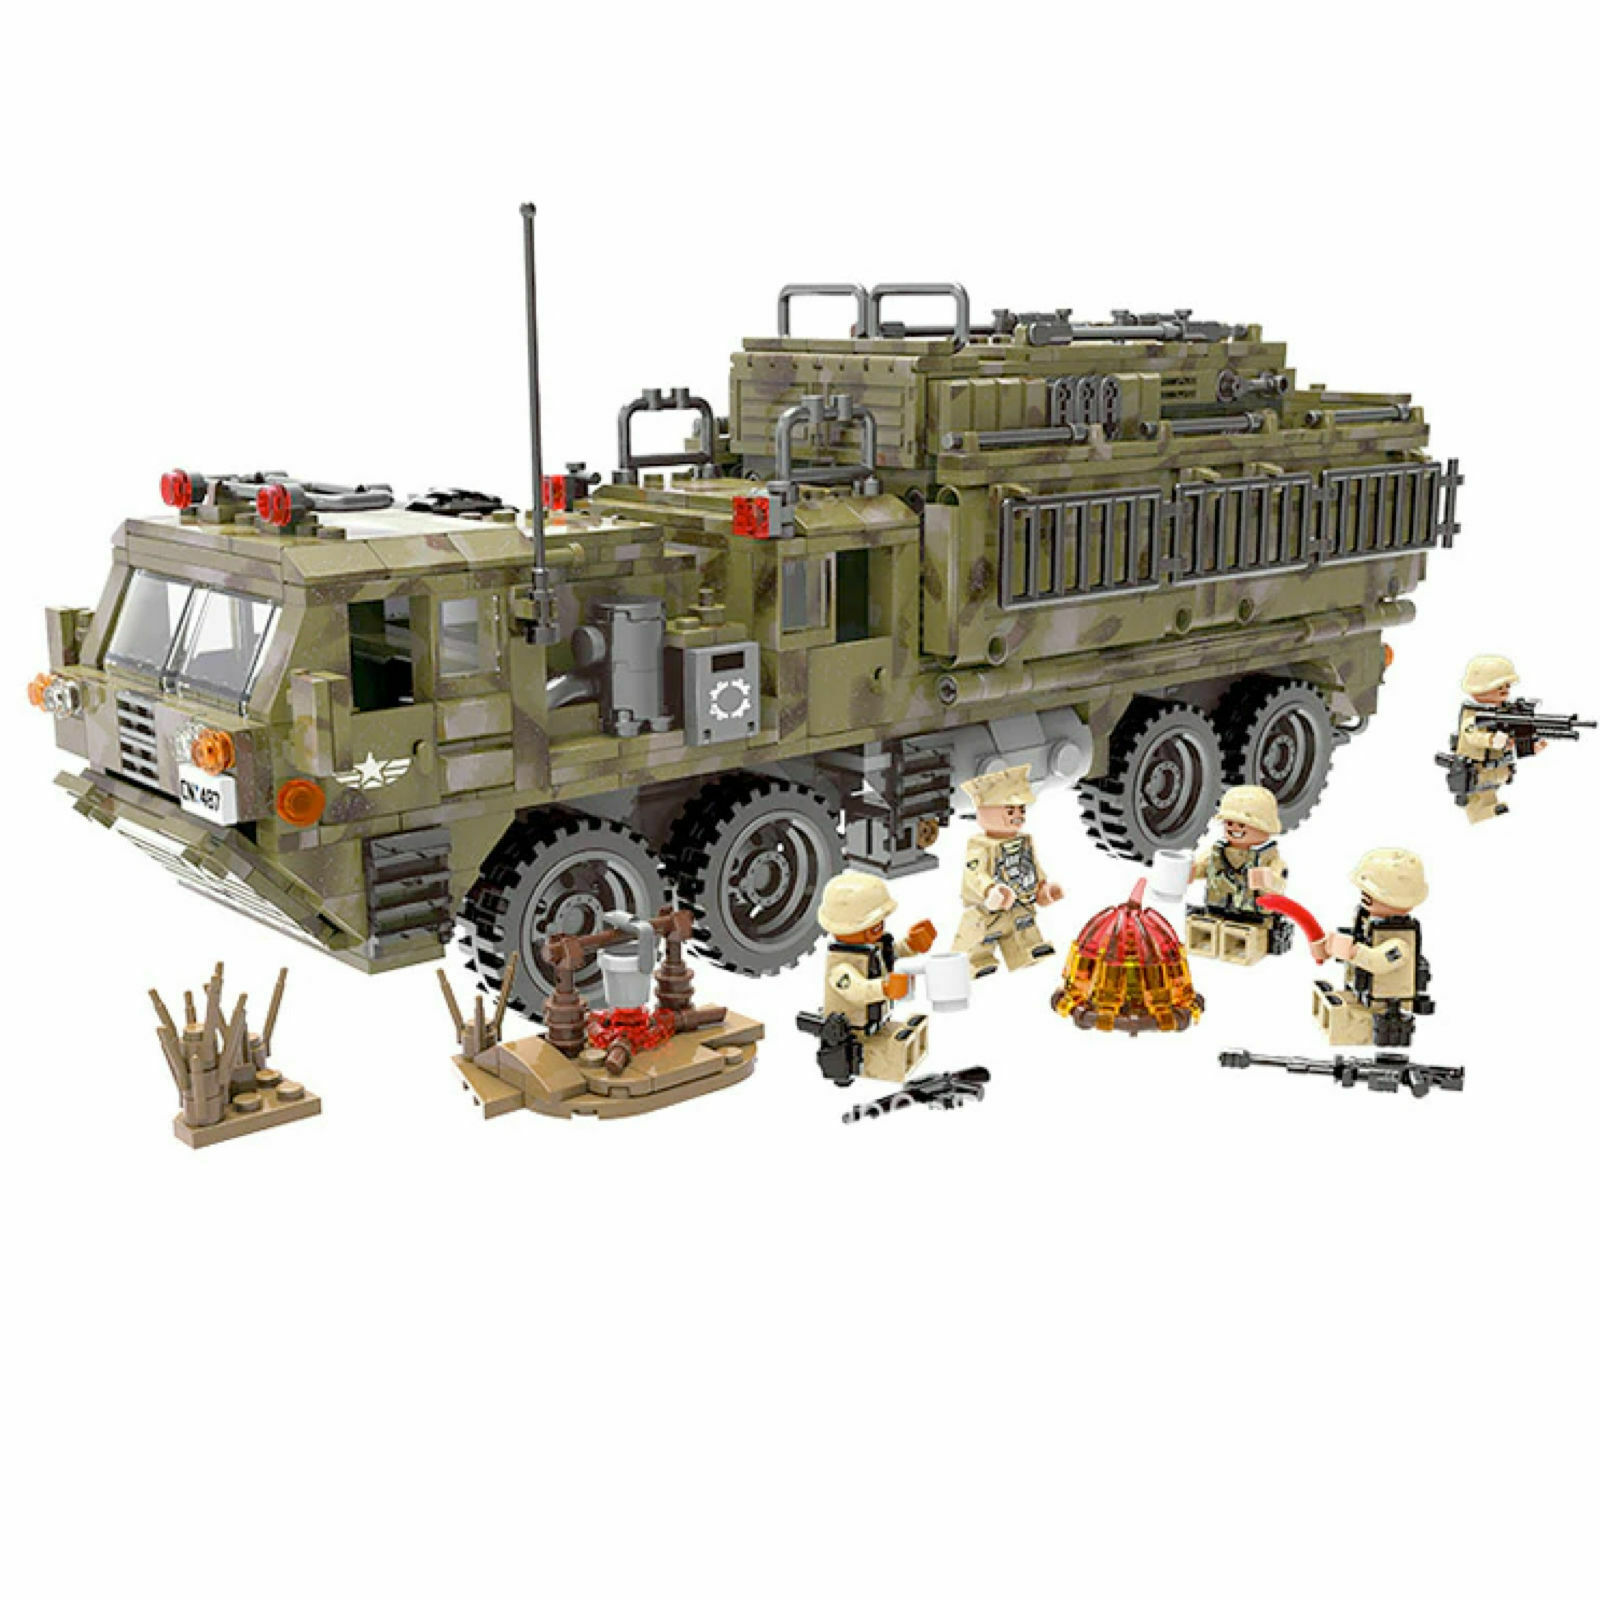 WW2 Serie Militare Camion blindato Marines Usa LEGO TECHNIC Compatibile 1377 pc